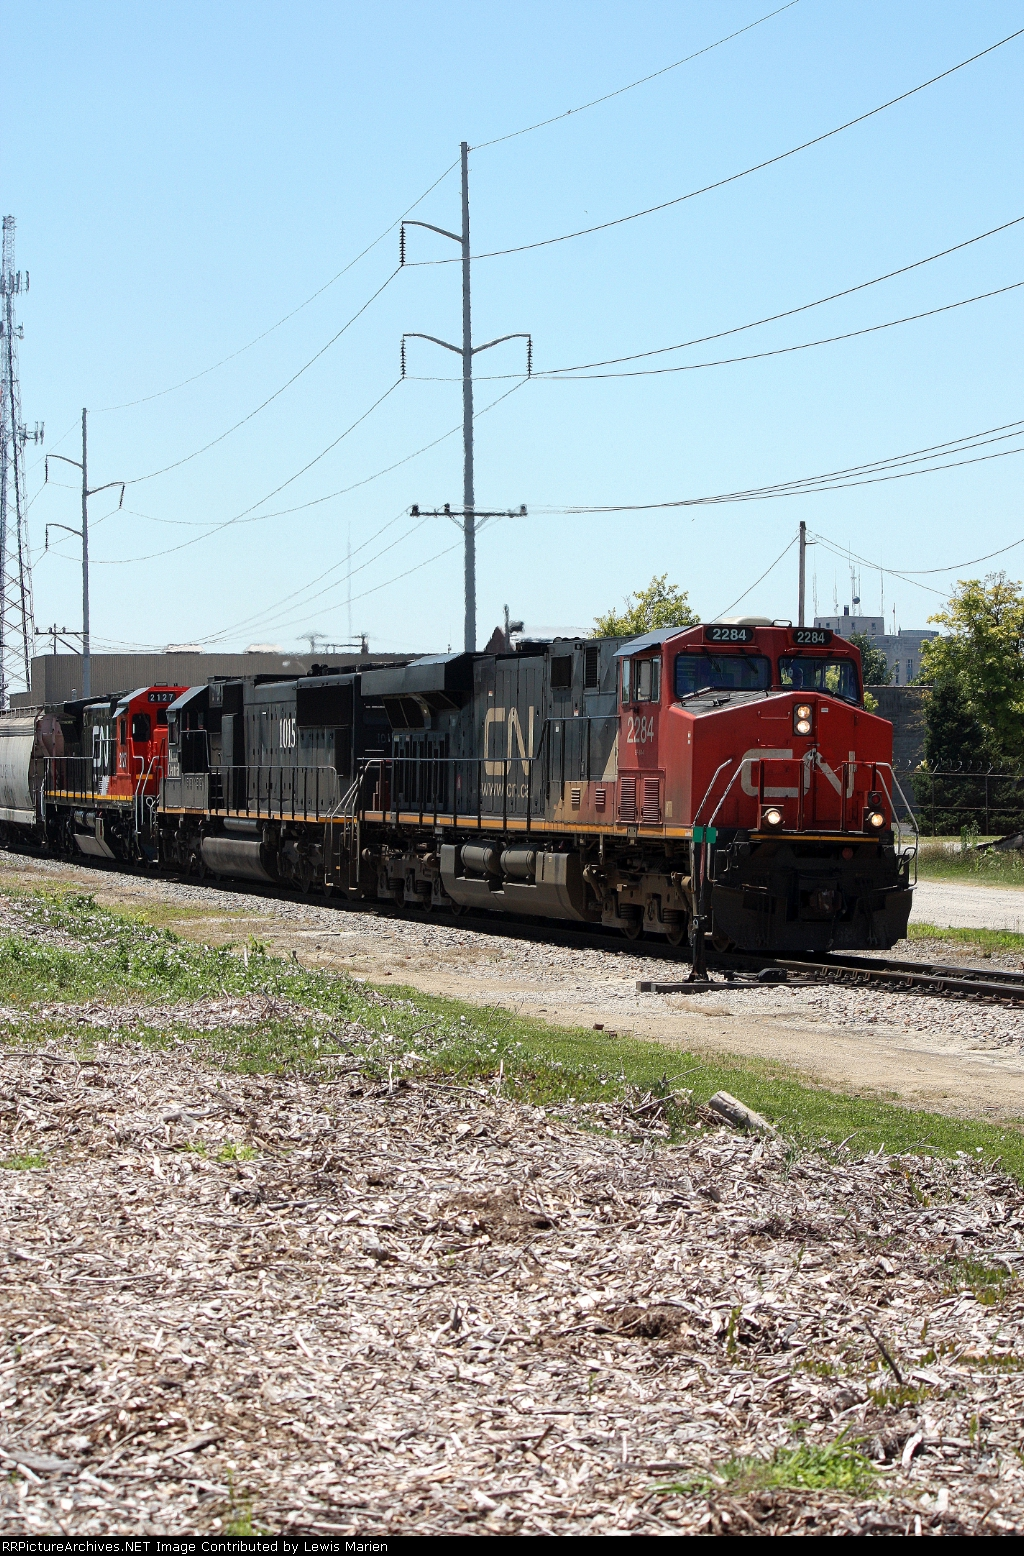 CN 2284, northbound CN train A43171-02